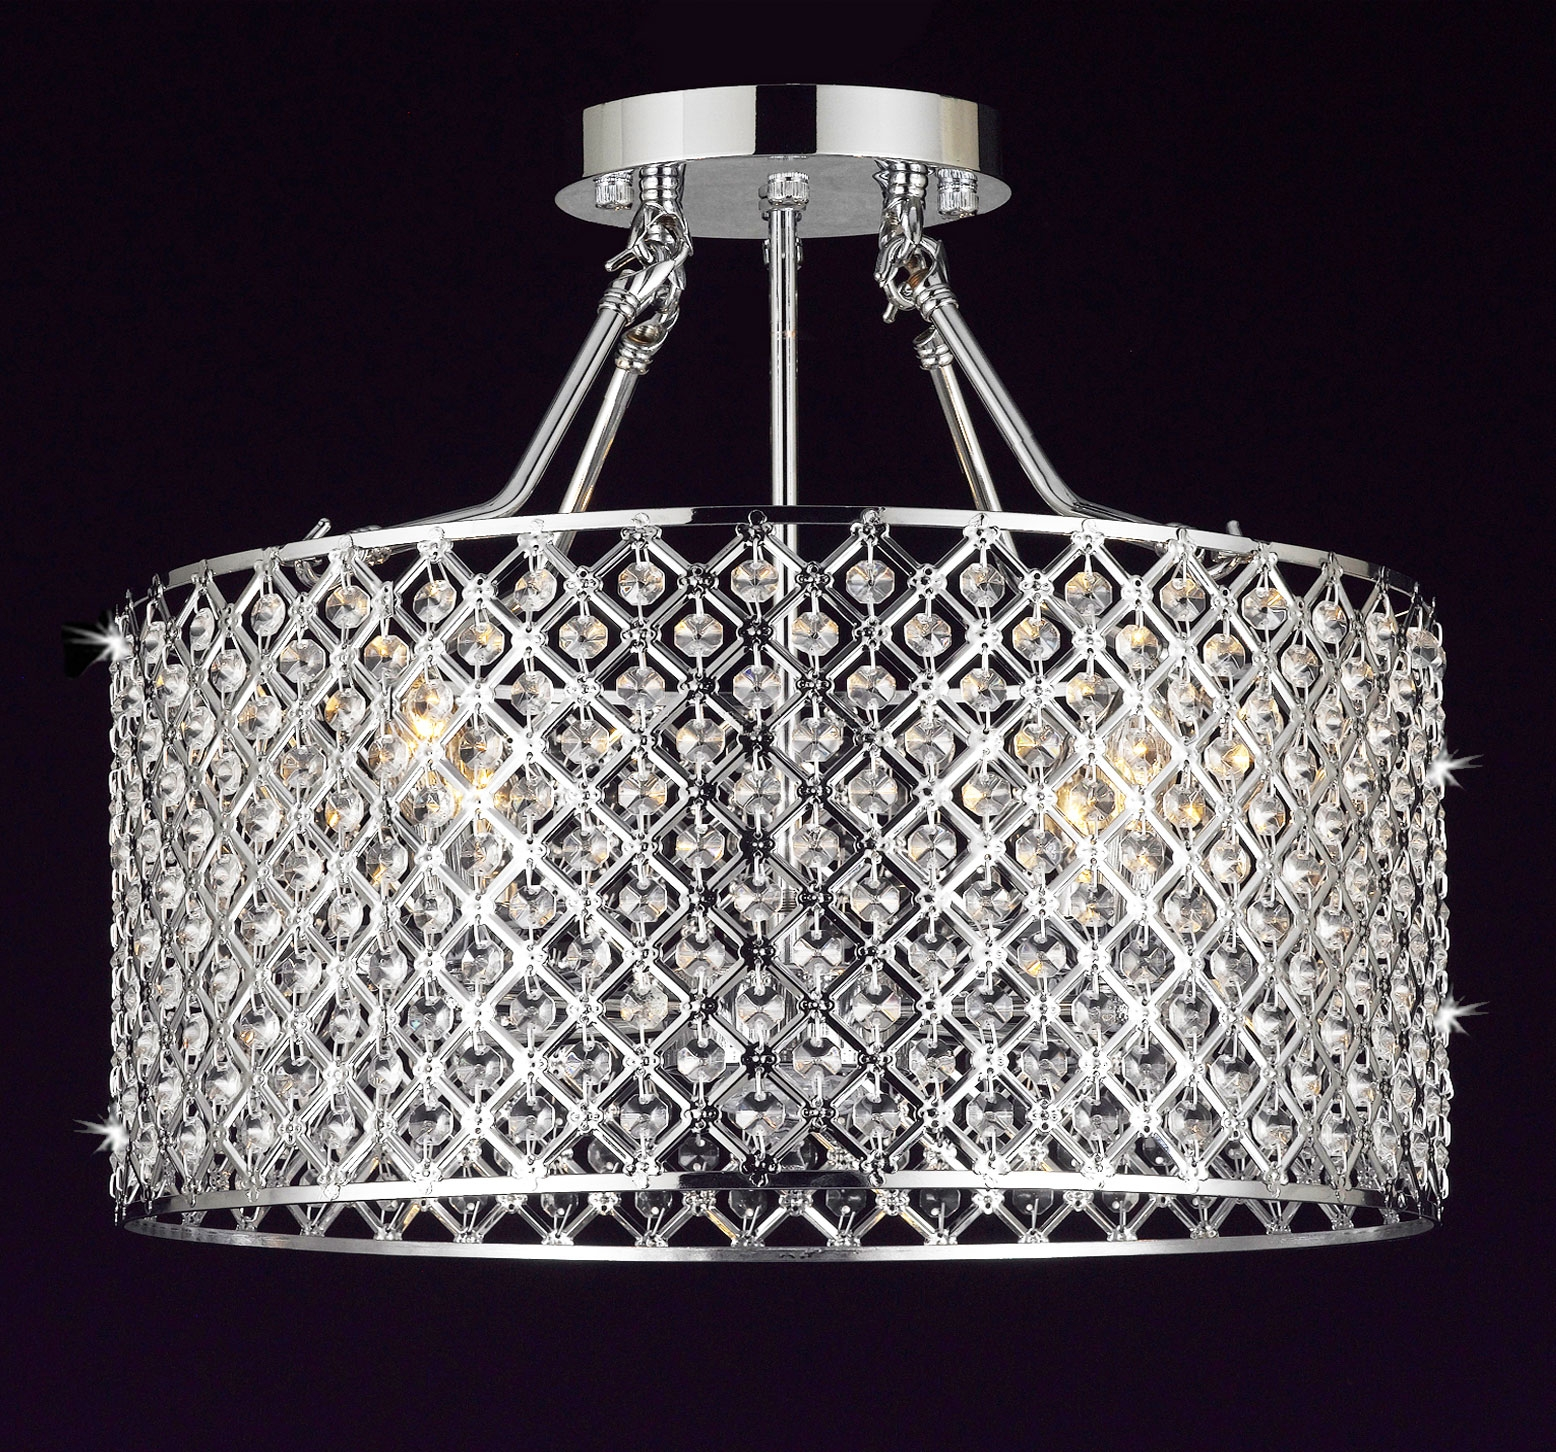 G7 B12white21304 Gallery Chandeliers Flushmount 4 Light Chrome With Regard To 4Light Chrome Crystal Chandeliers (Image 8 of 25)